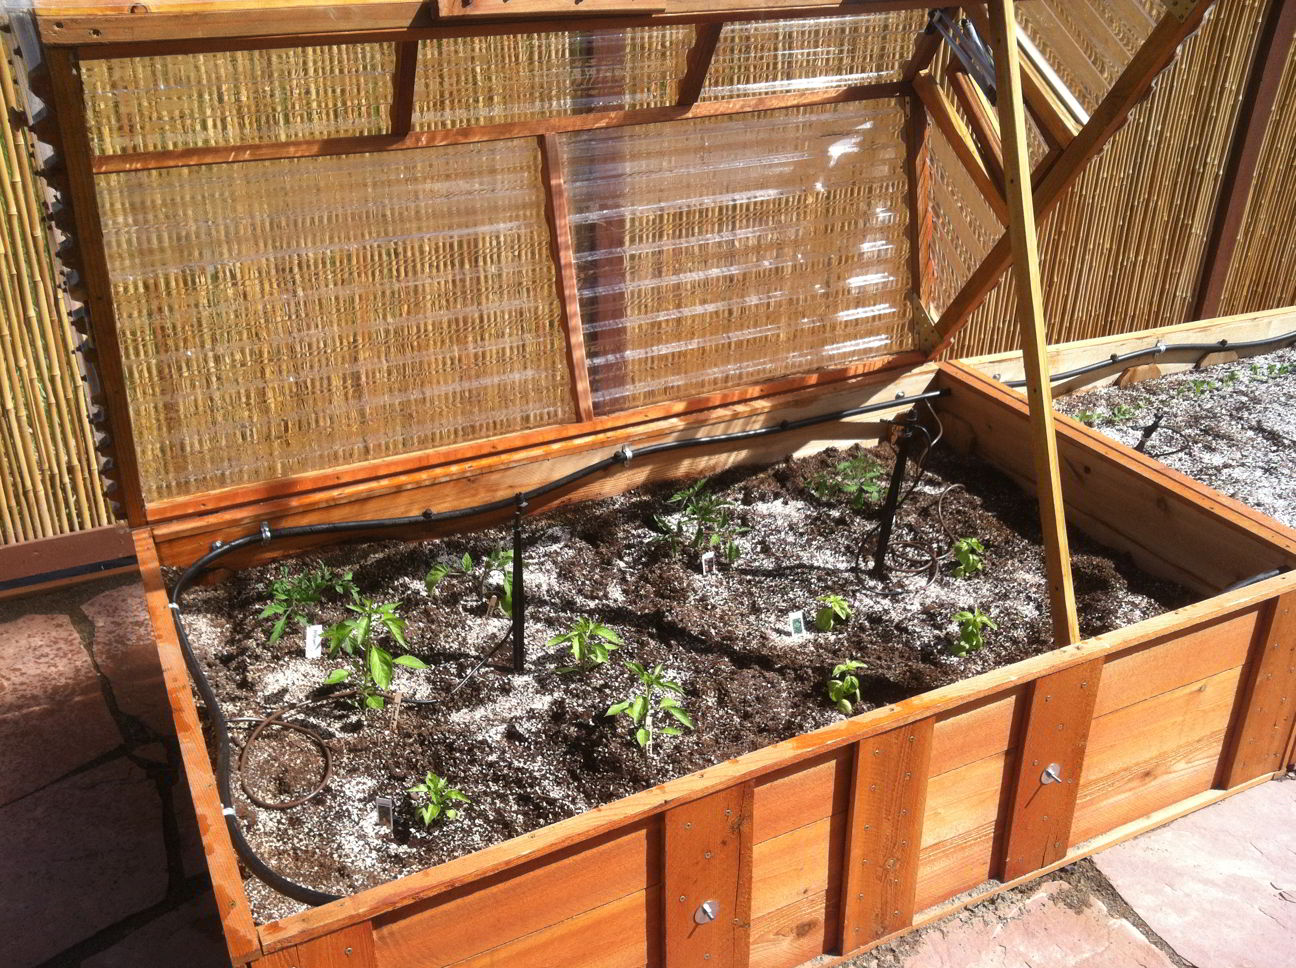 A Raised Bed Garden with Cold Frame and Drip Irrigation - Cold Climate